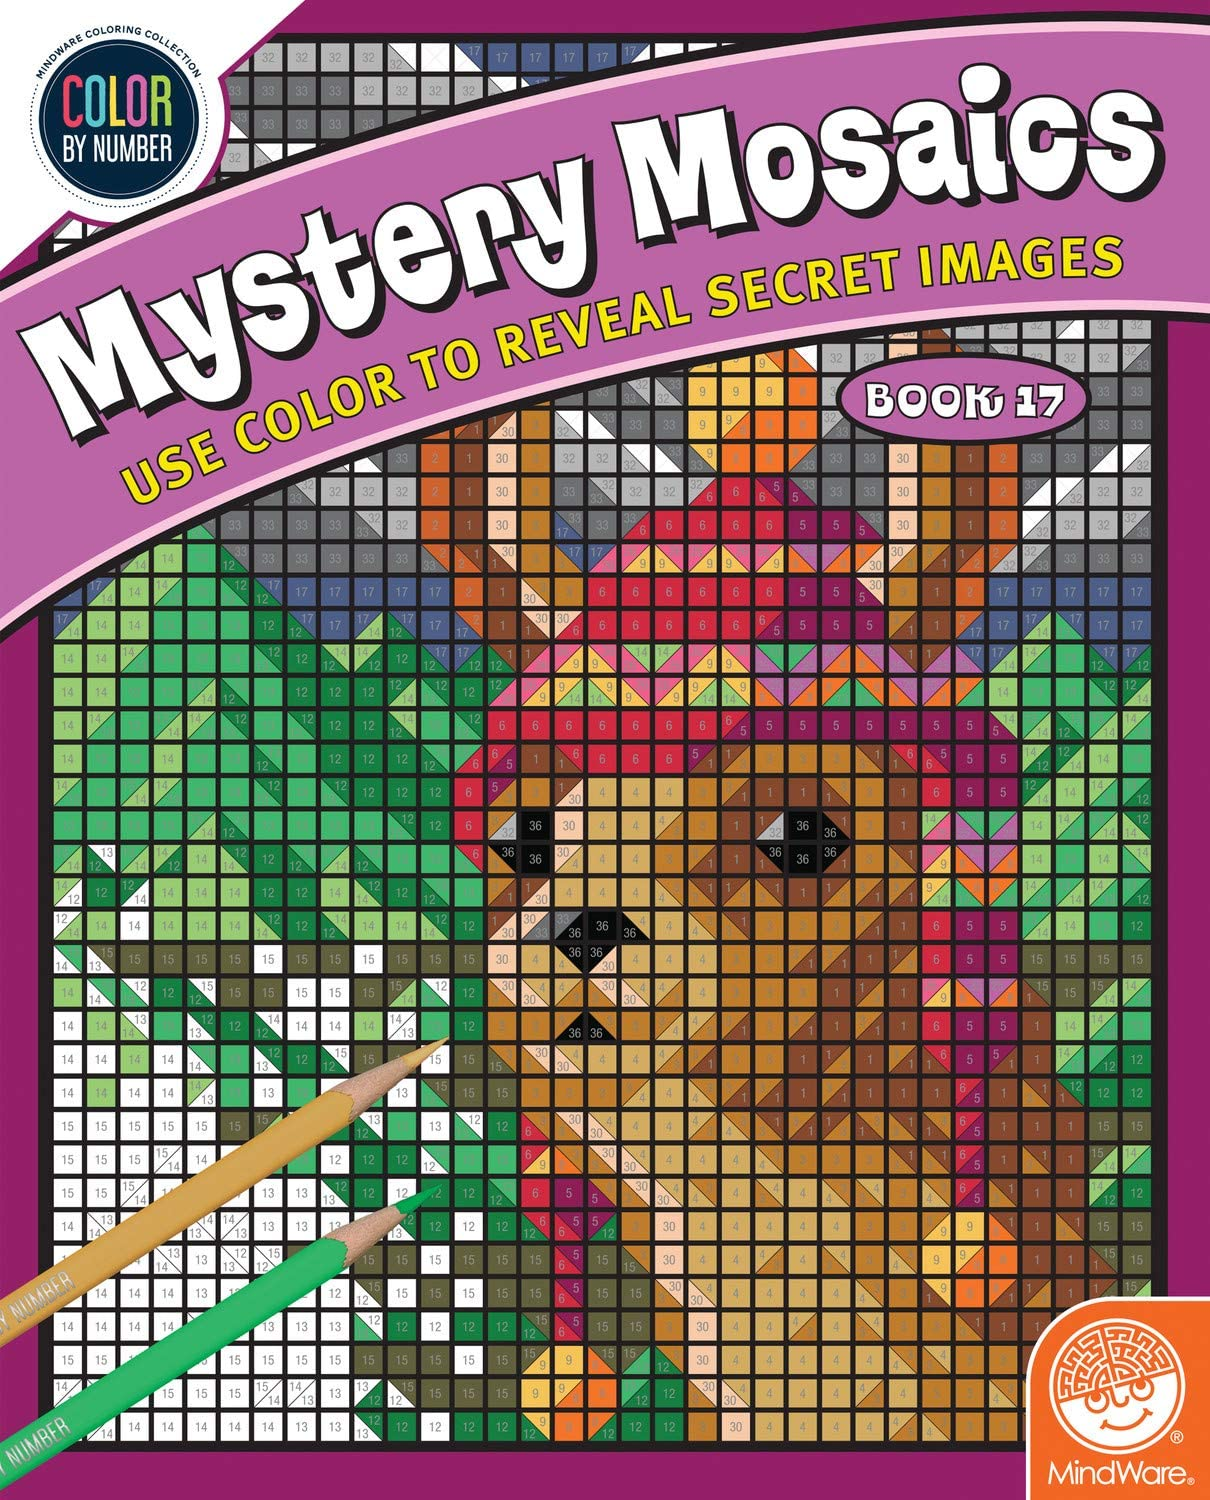 Fun Challenge with 18 Mosaic Puzzles Activity Coloring Book for Kids MindWare Color-by-Number Mystery Mosaics: Book 17 Engaging Quiet time workbook for Boys /& Girls Teens /& Adults